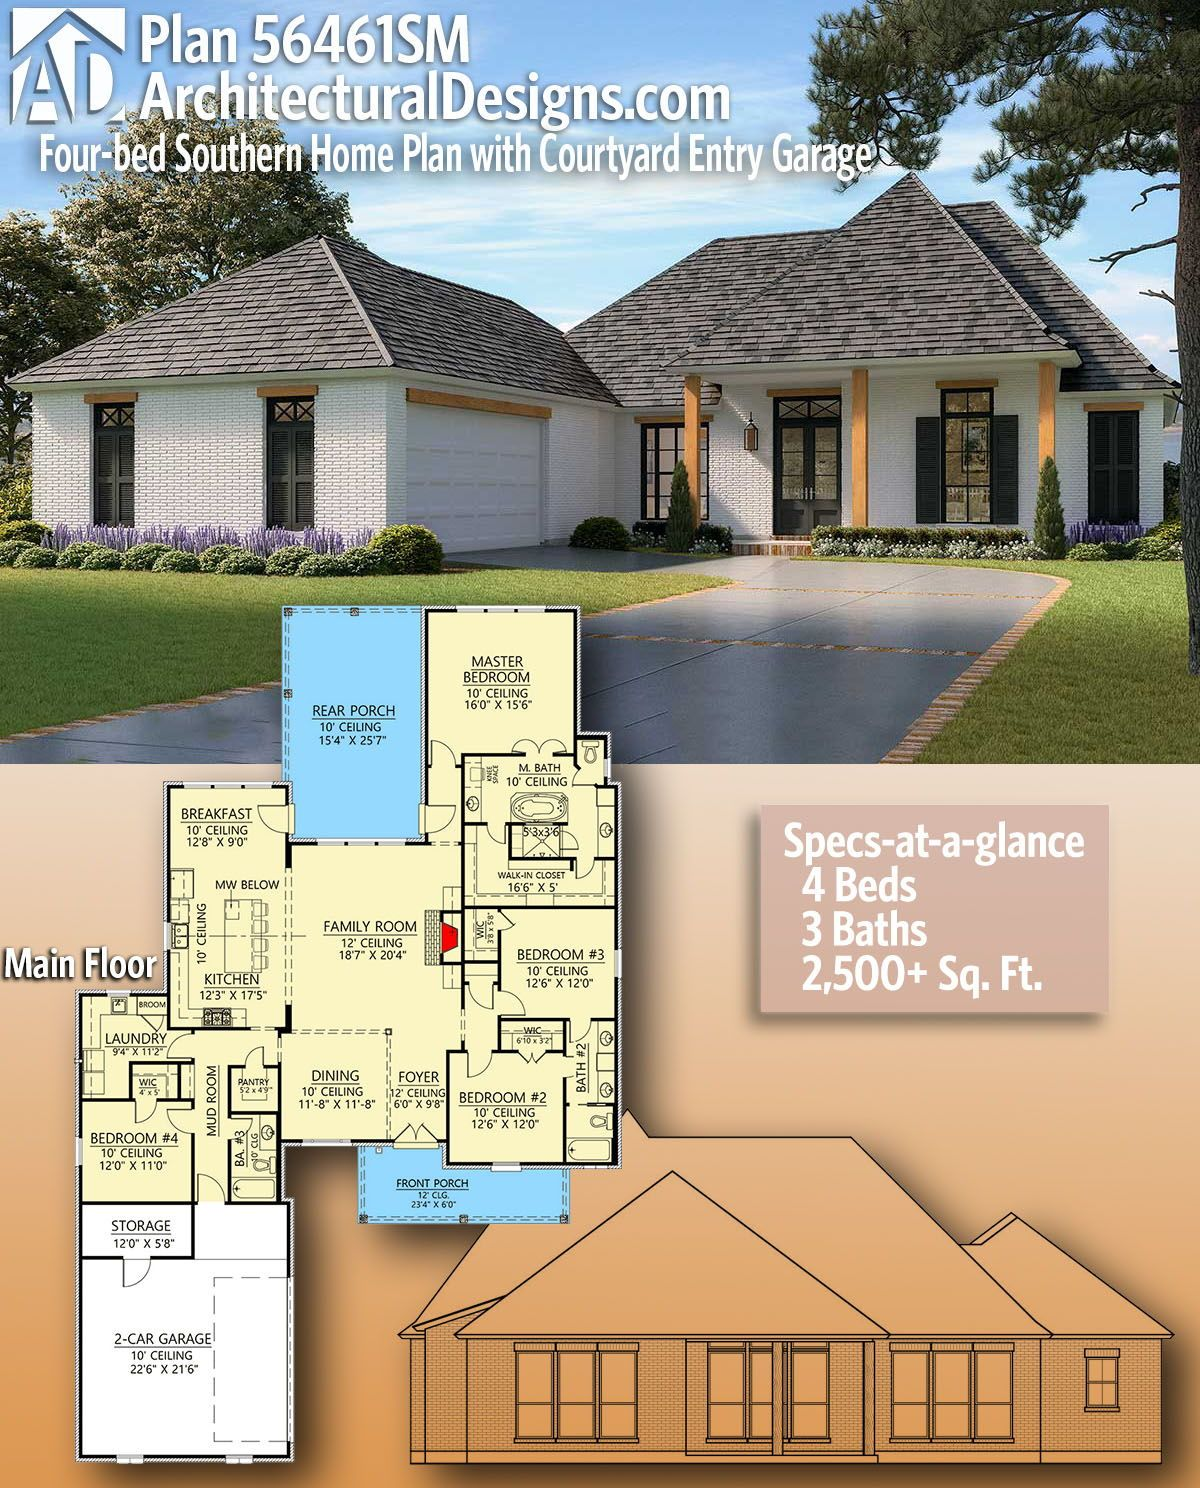 Plan 56461sm 4 Bed Southern Home Plan With Courtyard Entry Garage Southern House Plans French Country House Plans House Plans